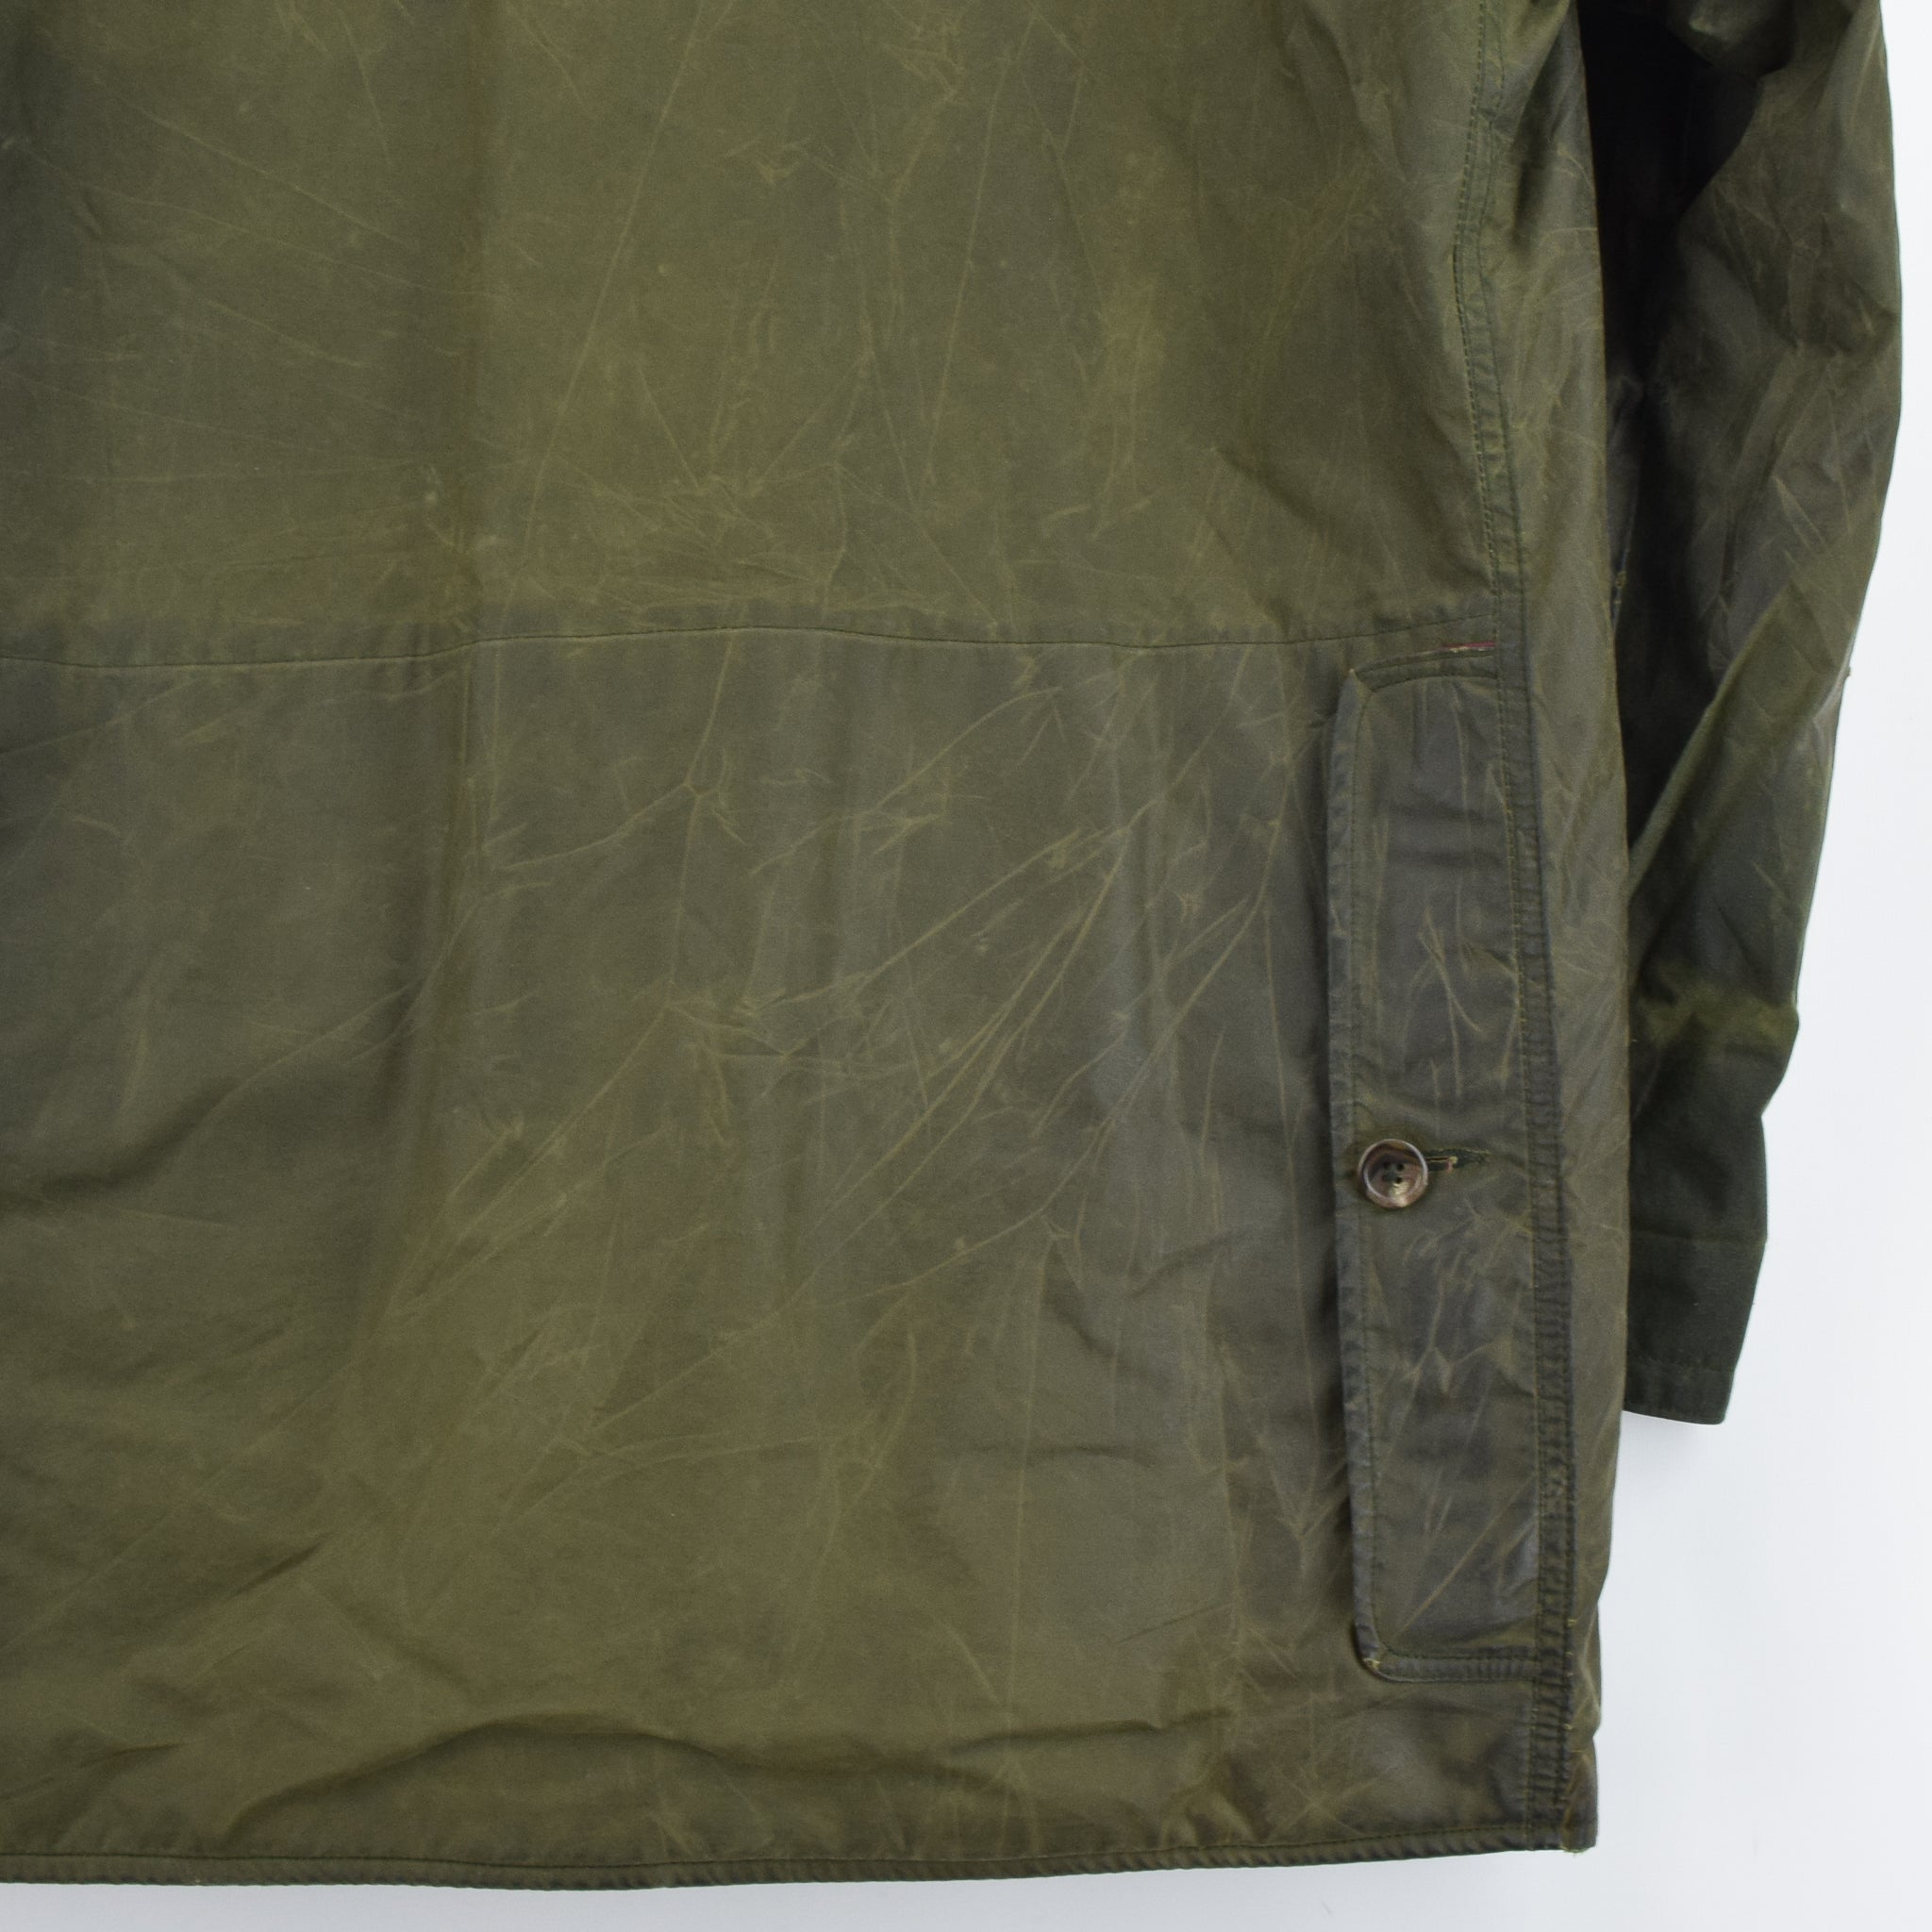 6b19a6ed4 ... Vintage 80s Ralph Lauren Polo Green Wax Jacket Hunting Coat Made in USA  M   L